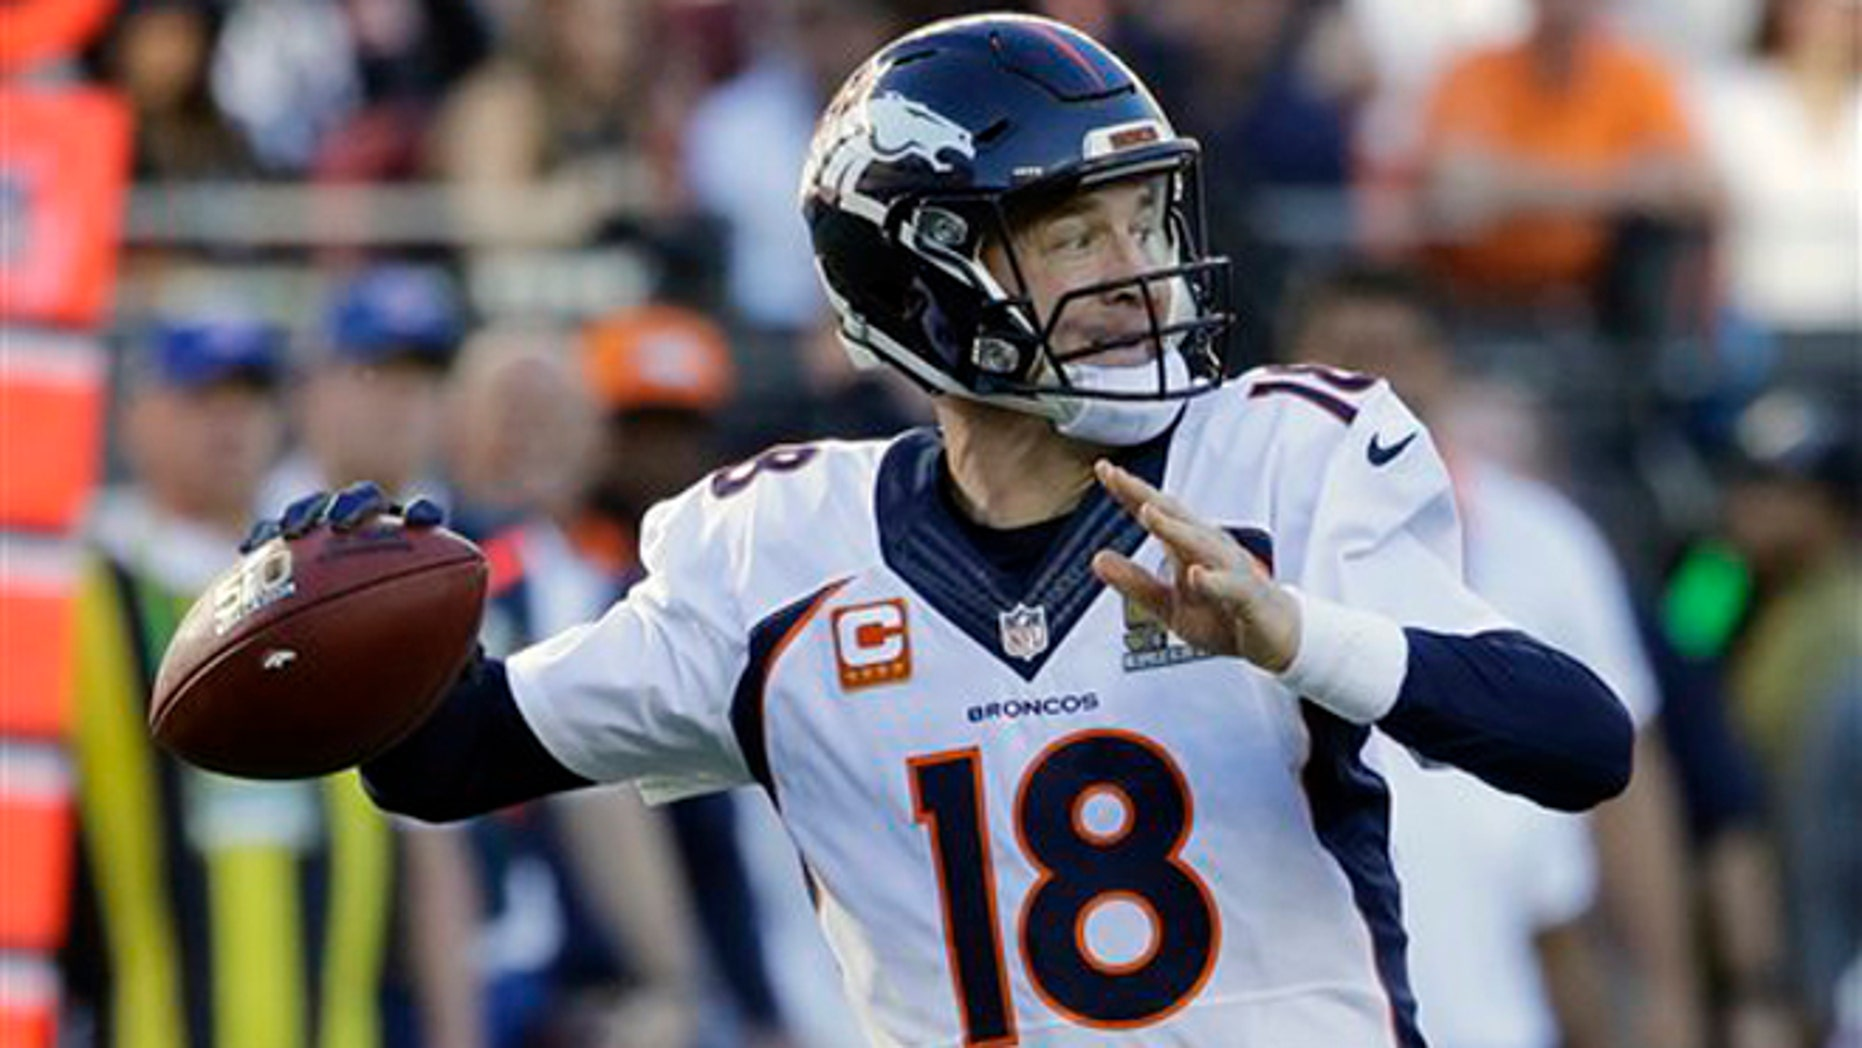 Denver Broncos' Peyton Manning (18) throws during the first half of the NFL Super Bowl 50 football game against the Carolina Panthers Sunday, Feb. 7, 2016, in Santa Clara, Calif. (AP Photo/Gregory Bull)